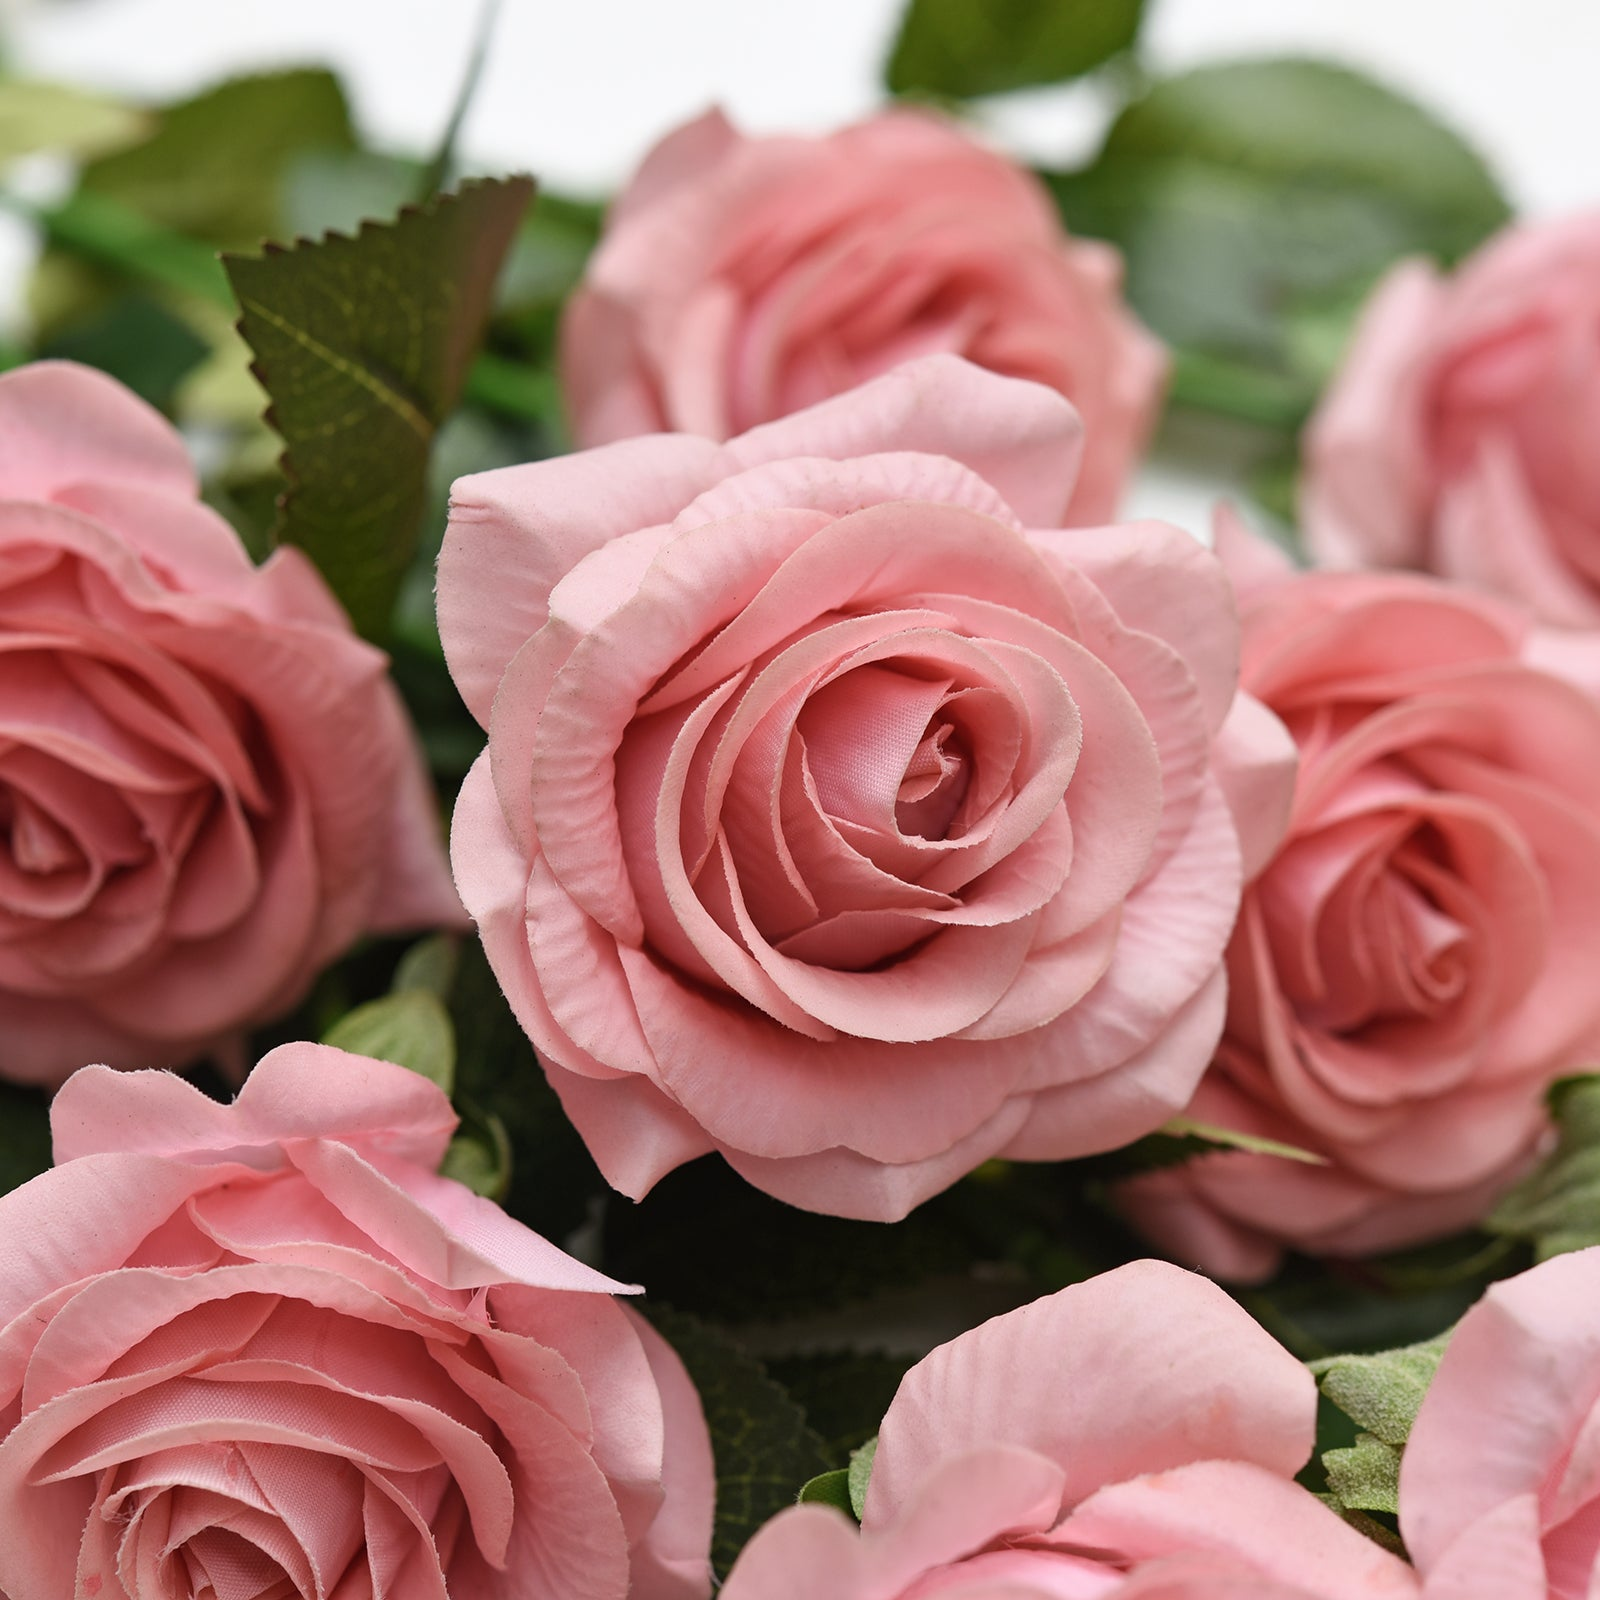 Real Touch 10 Stems Dusty Pink Silk Artificial Roses Flowers 'Petals Feel and Look like Fresh Roses